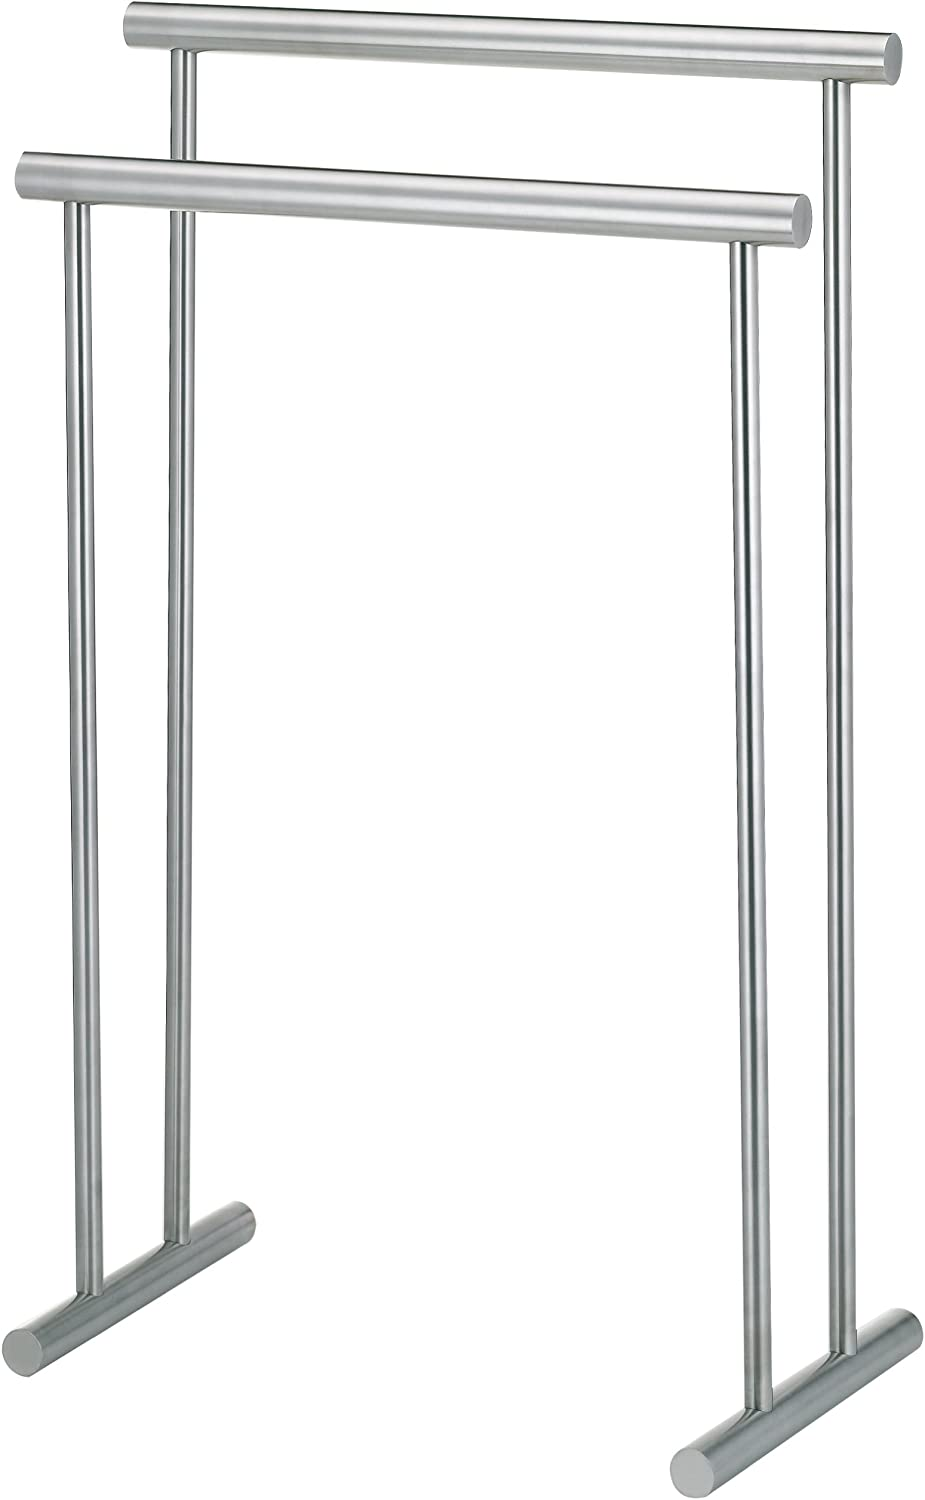 Kela 22690 Free Standing Towel Rack for Bathroom Priamo Collection, 22  Wide, Stainless Steel